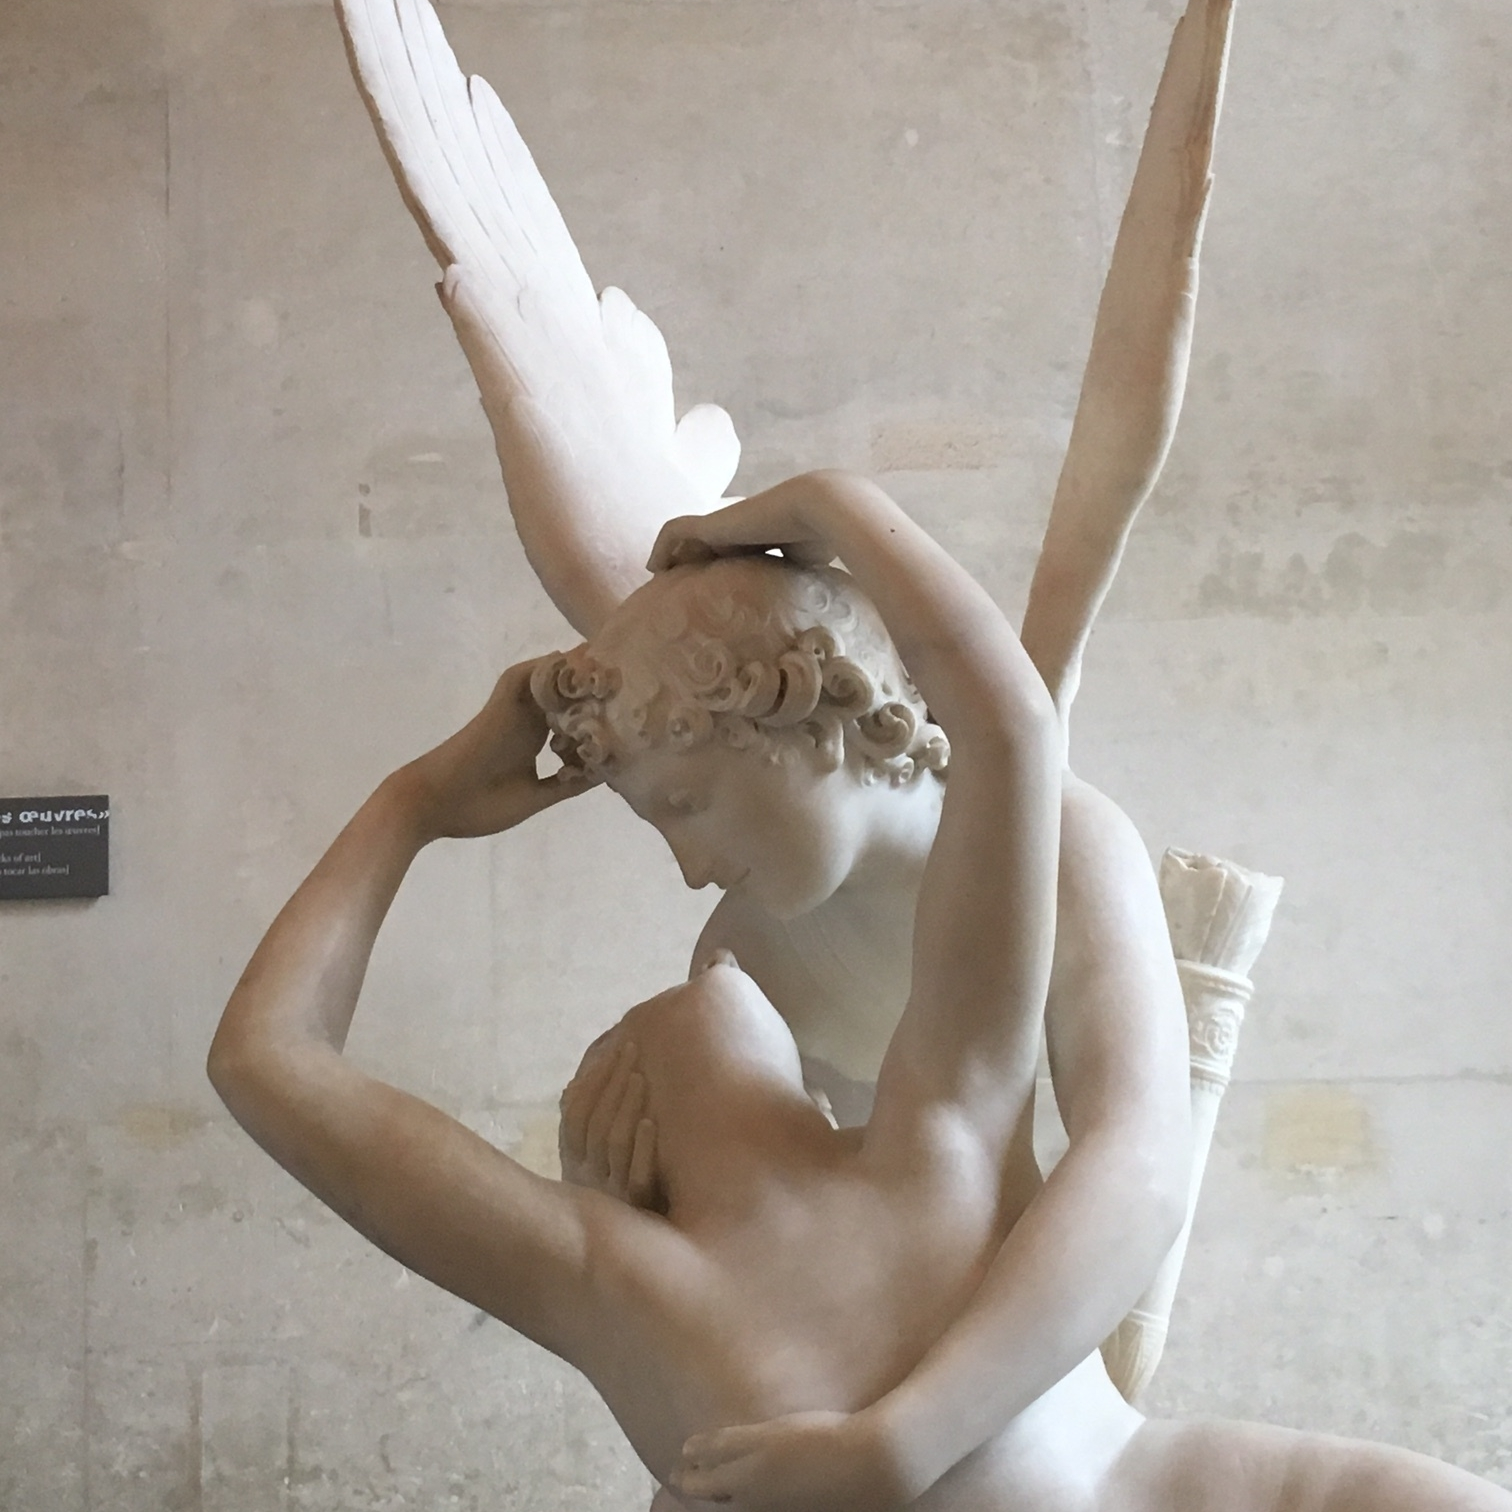 Sculpture at the Louvre, Paris by The Doubtful Traveller